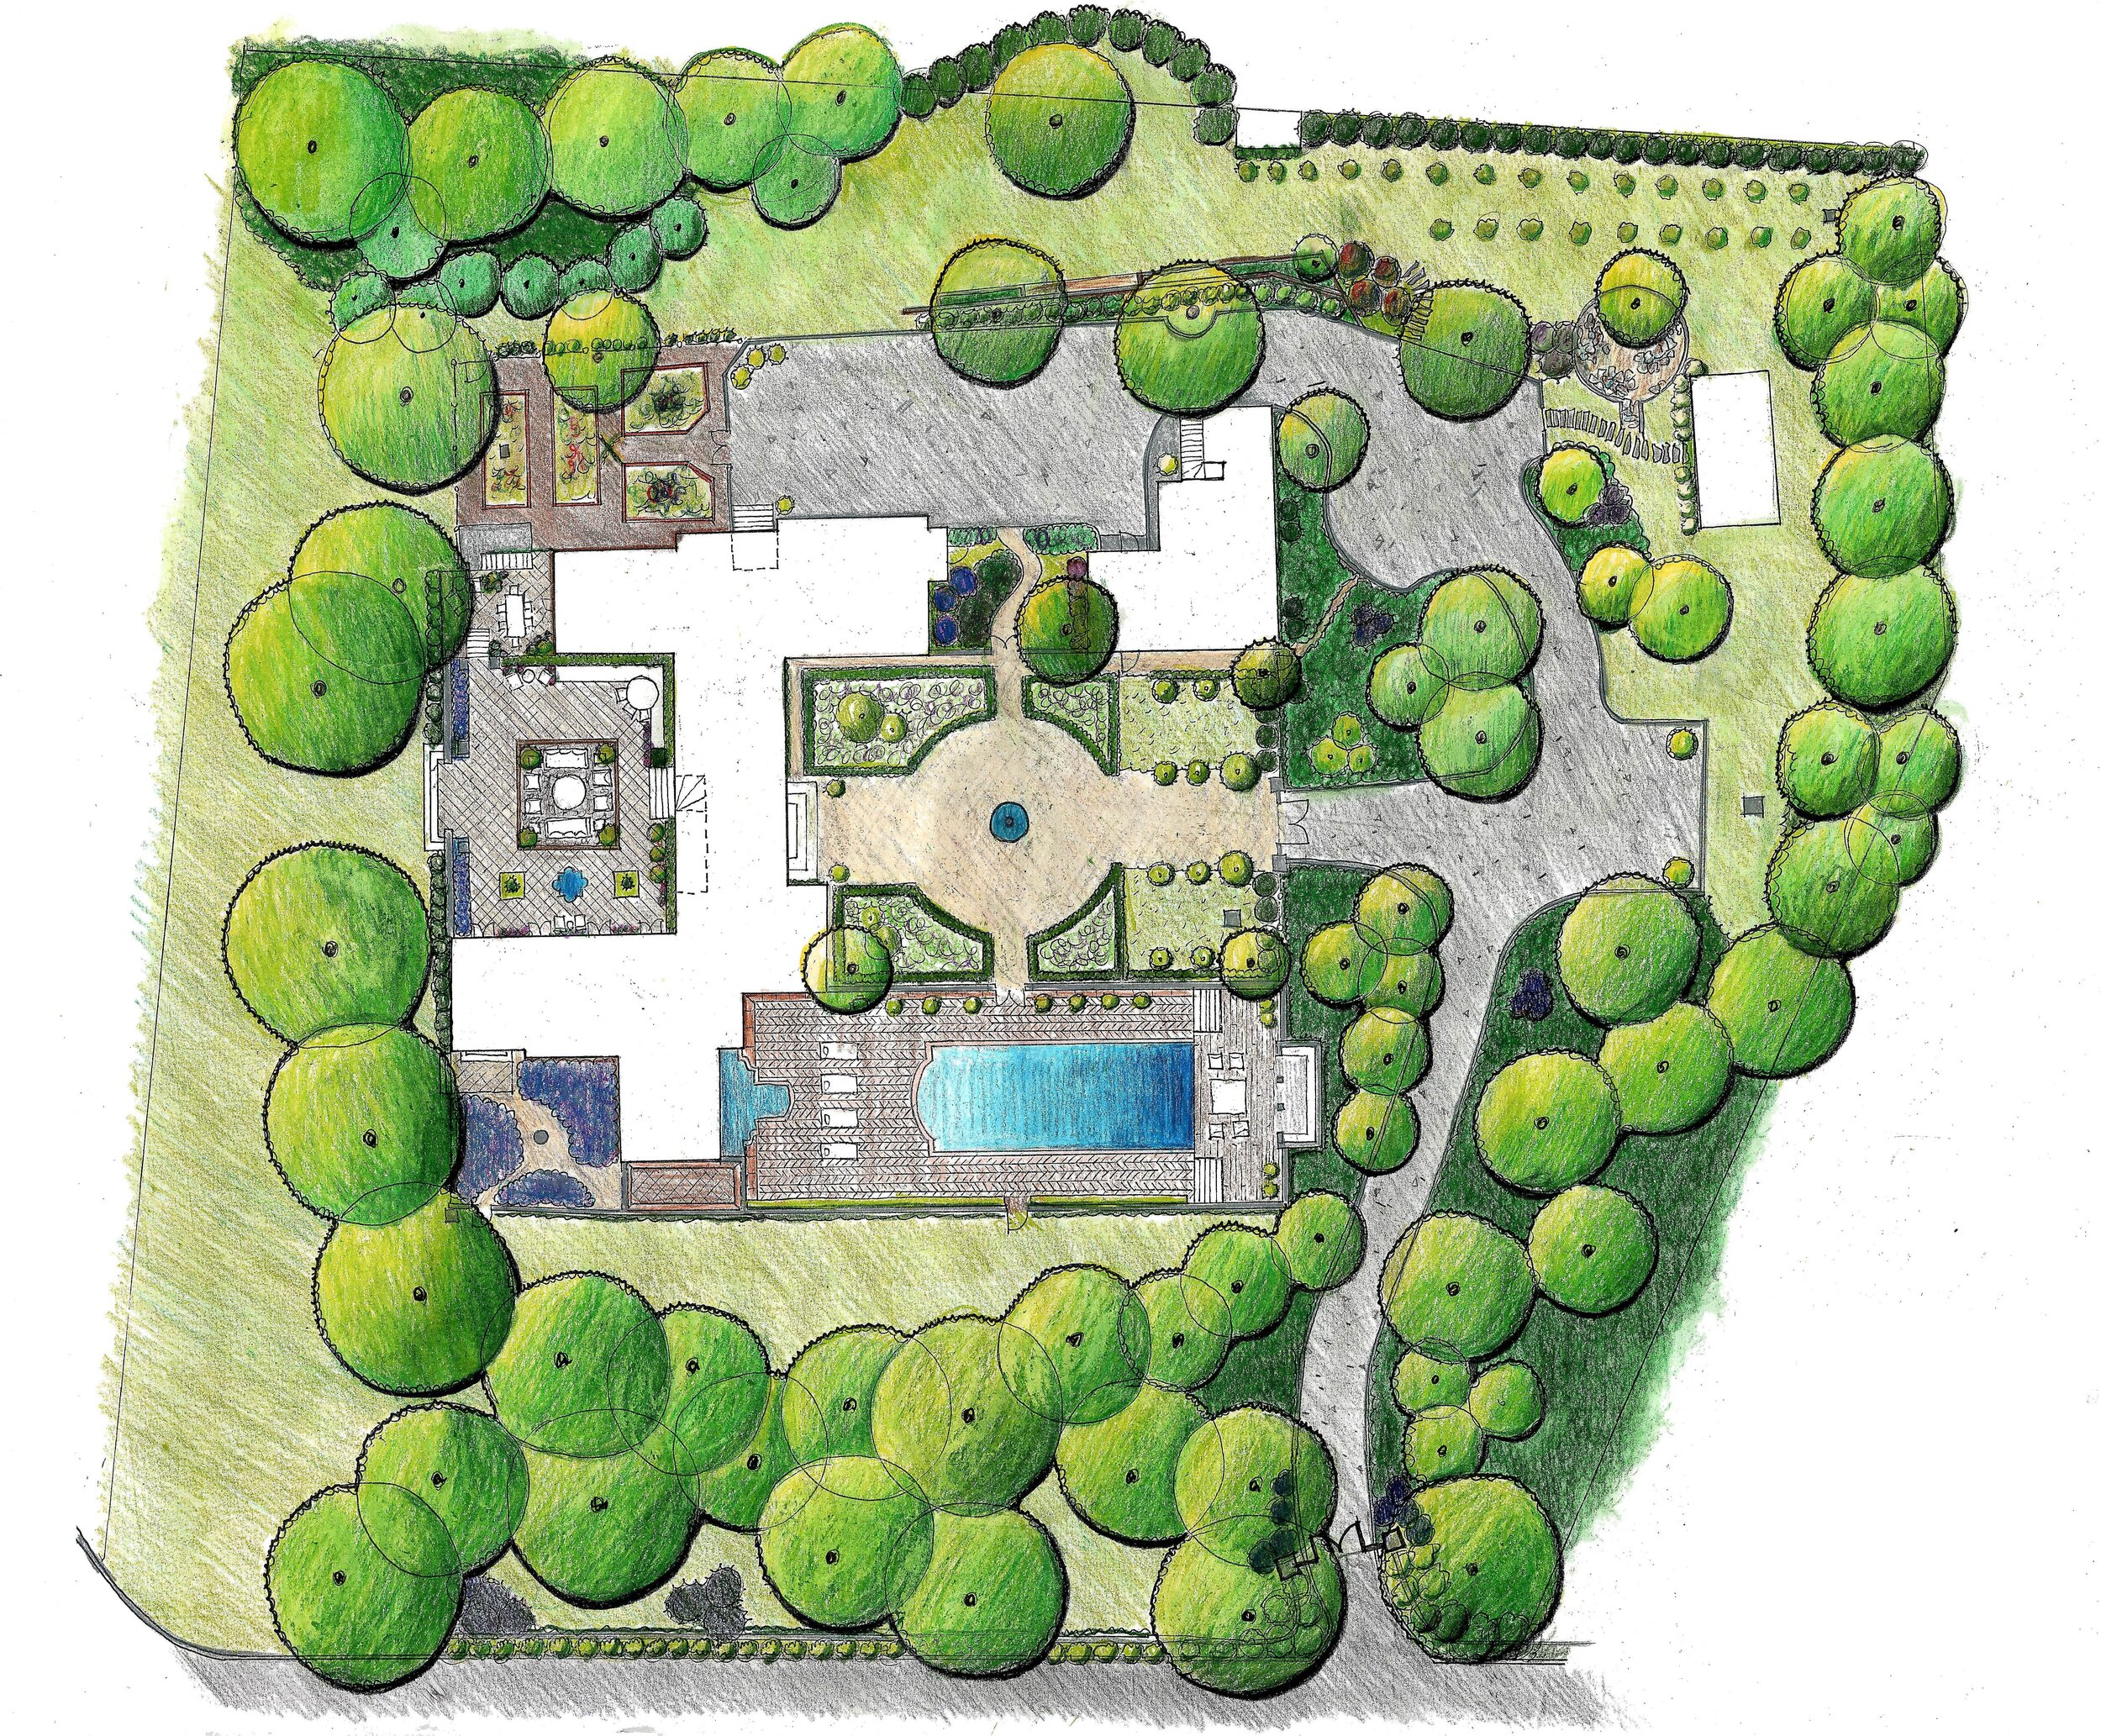 Gibbons Scattone Site Plan clean.jpg